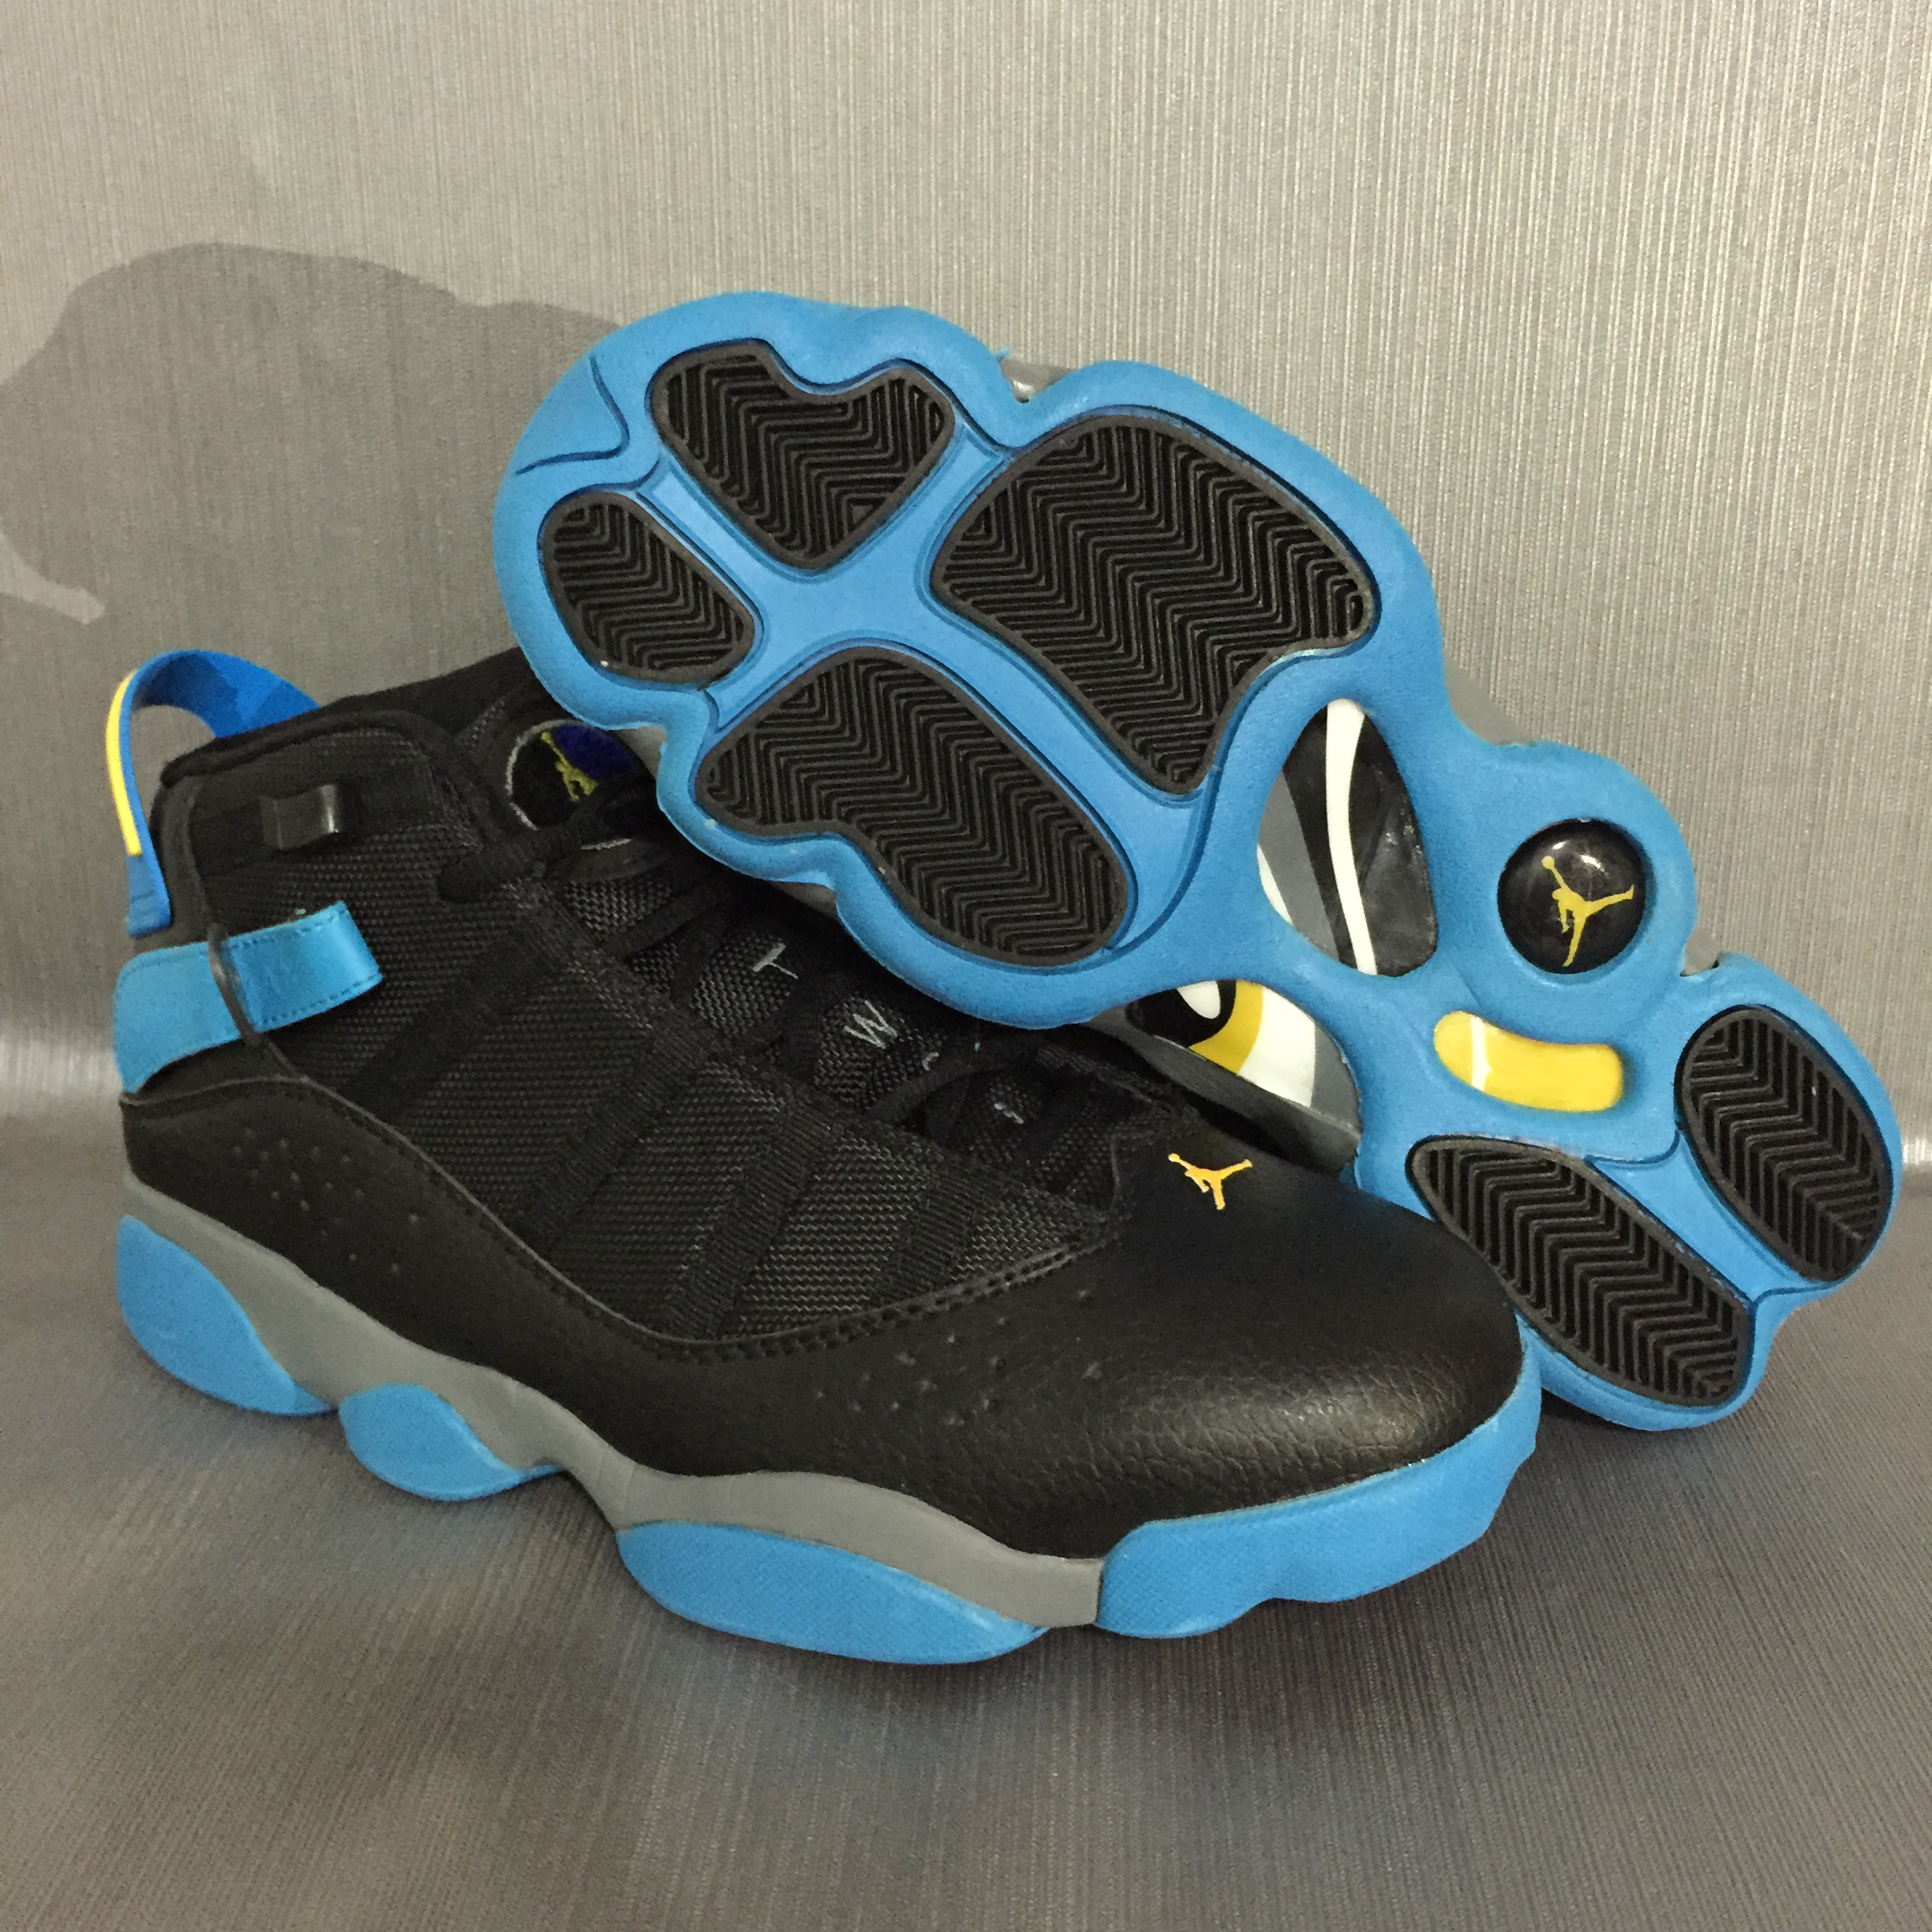 2017 Air Jordan 6 Rings Black Blue Yellow Shoes